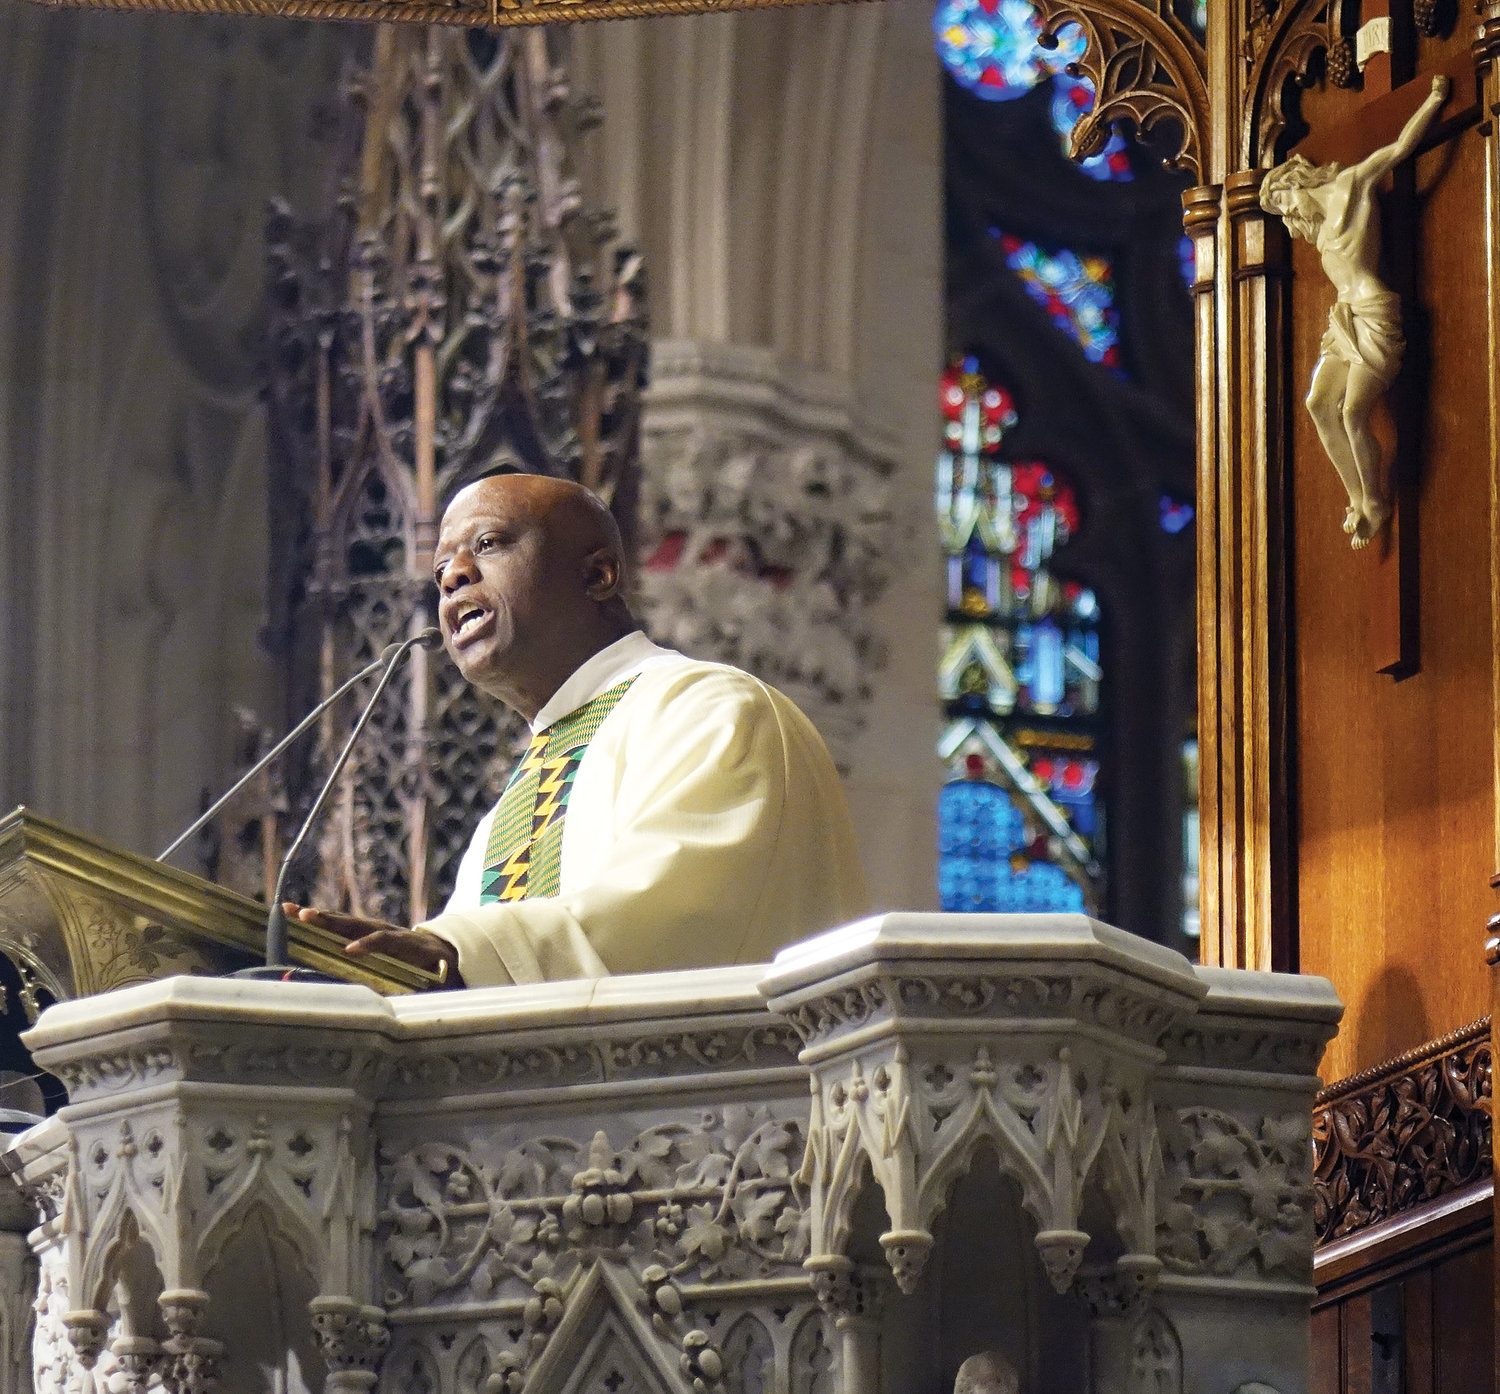 Father Andrew C. Smith, Jr., pastor of Holy Angels parish in Chicago, delivers the homily.